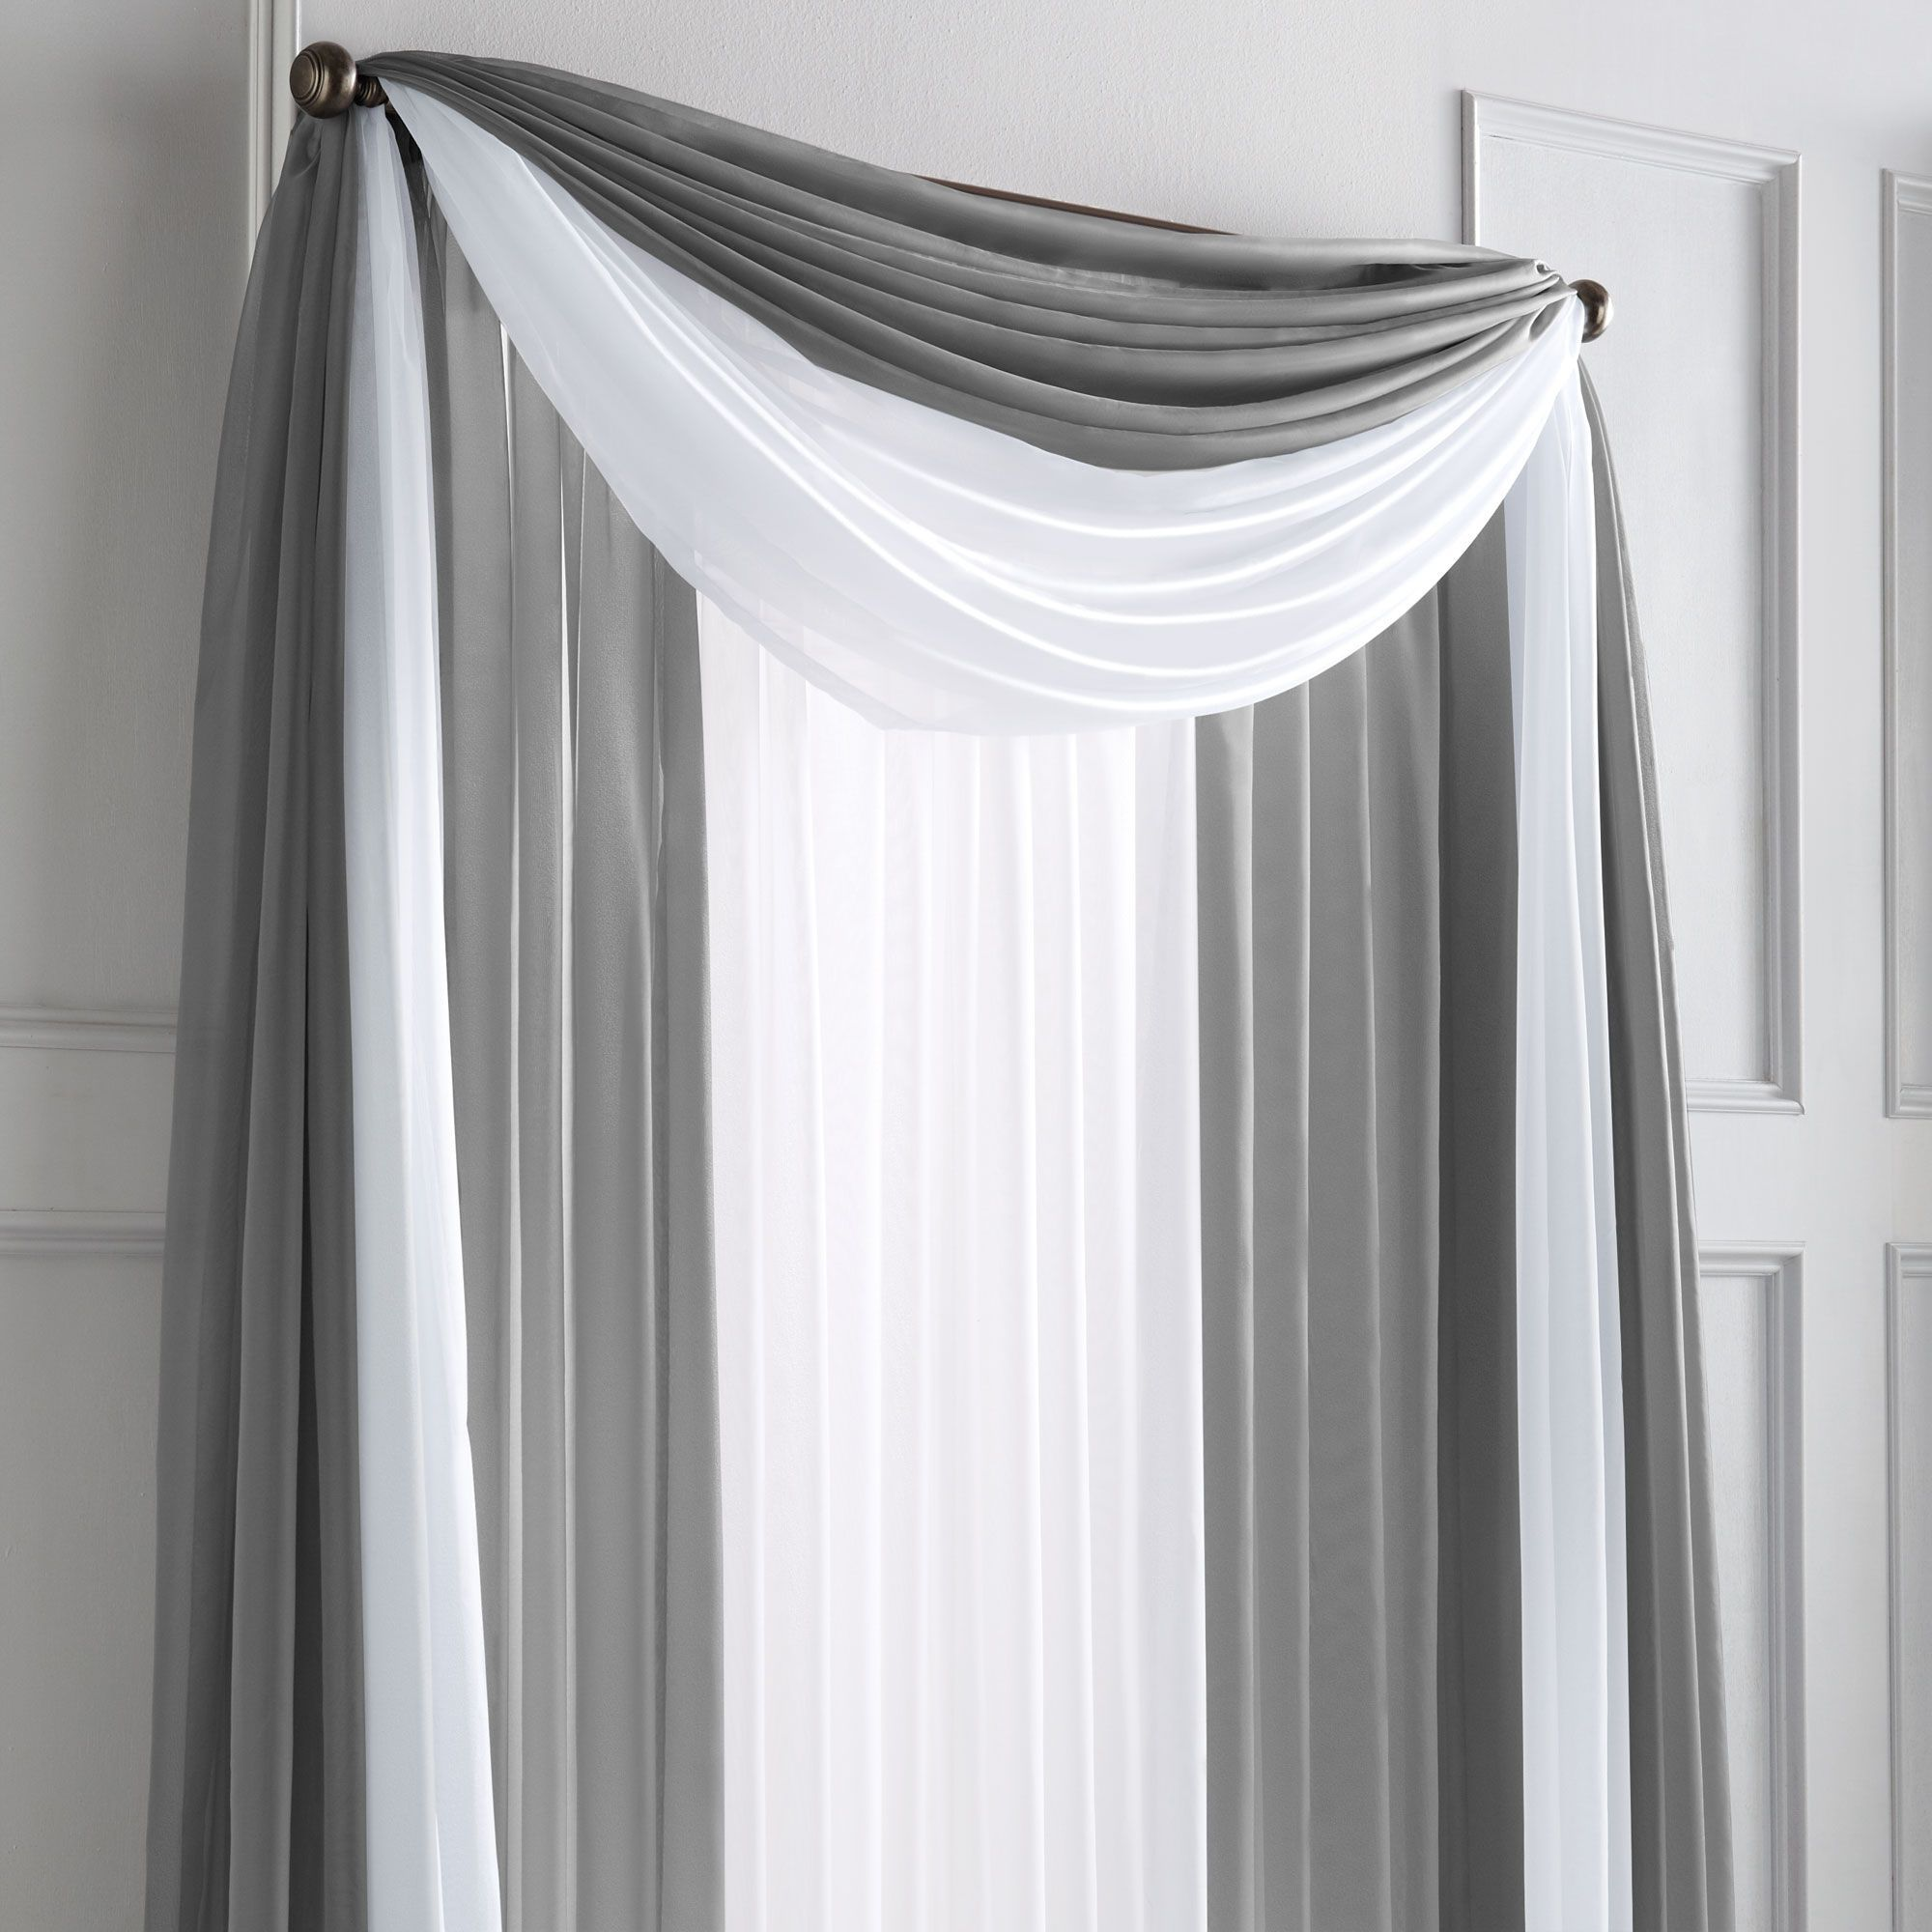 Sheer Scarf Valance Window Treatments Part - 20: WholeHome®/MD U0027Silhouette Sheeru0027 Rod-pocket Panel · Decorations For HouseScarf  ValanceCurtains ...